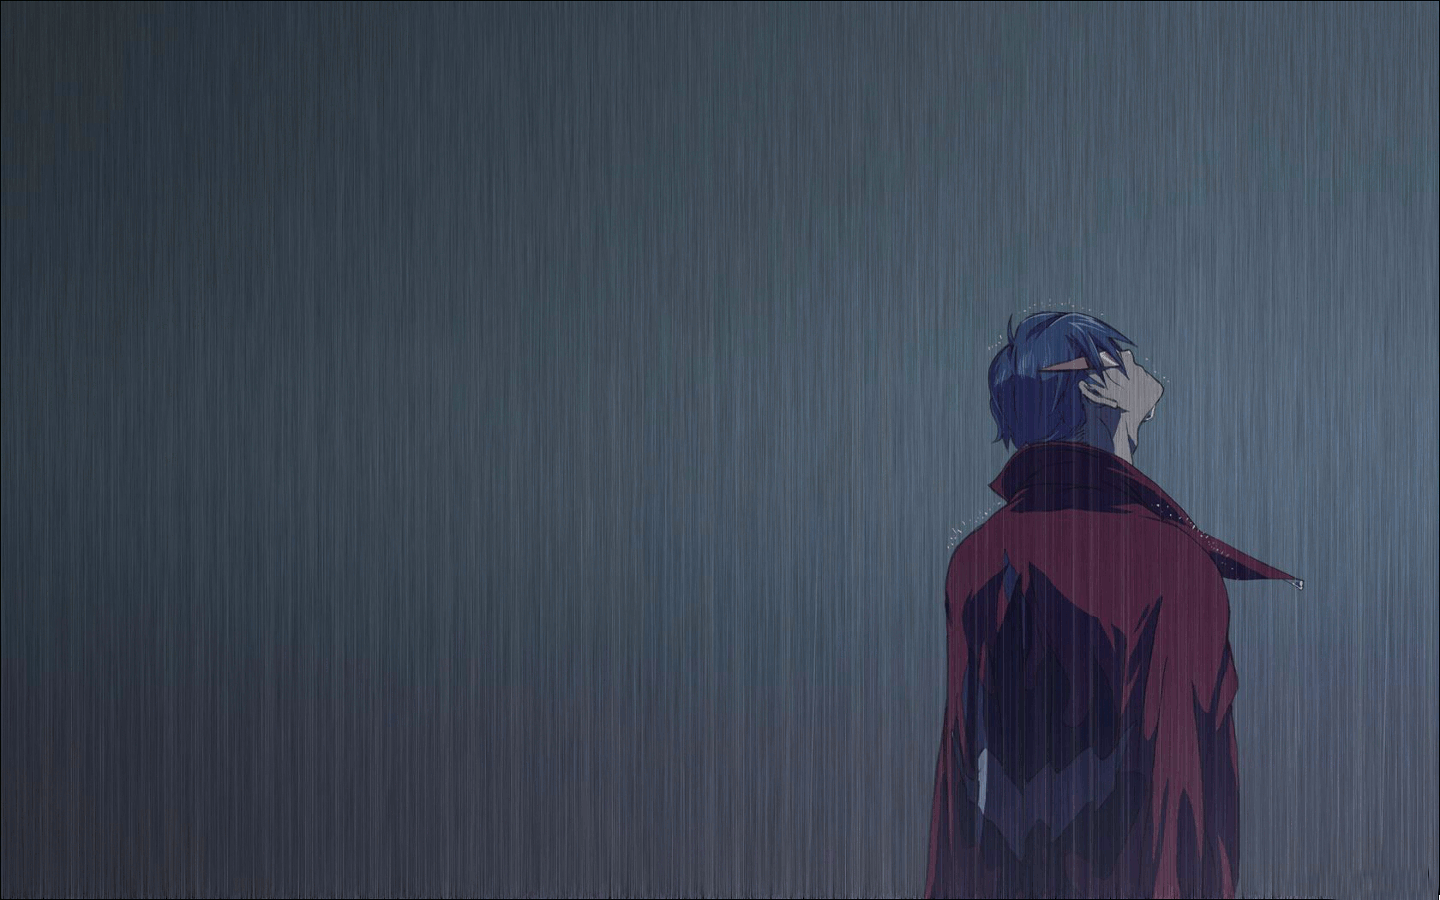 Sad Love Animation Wallpaper : Sad Anime Wallpaper - WallpaperSafari